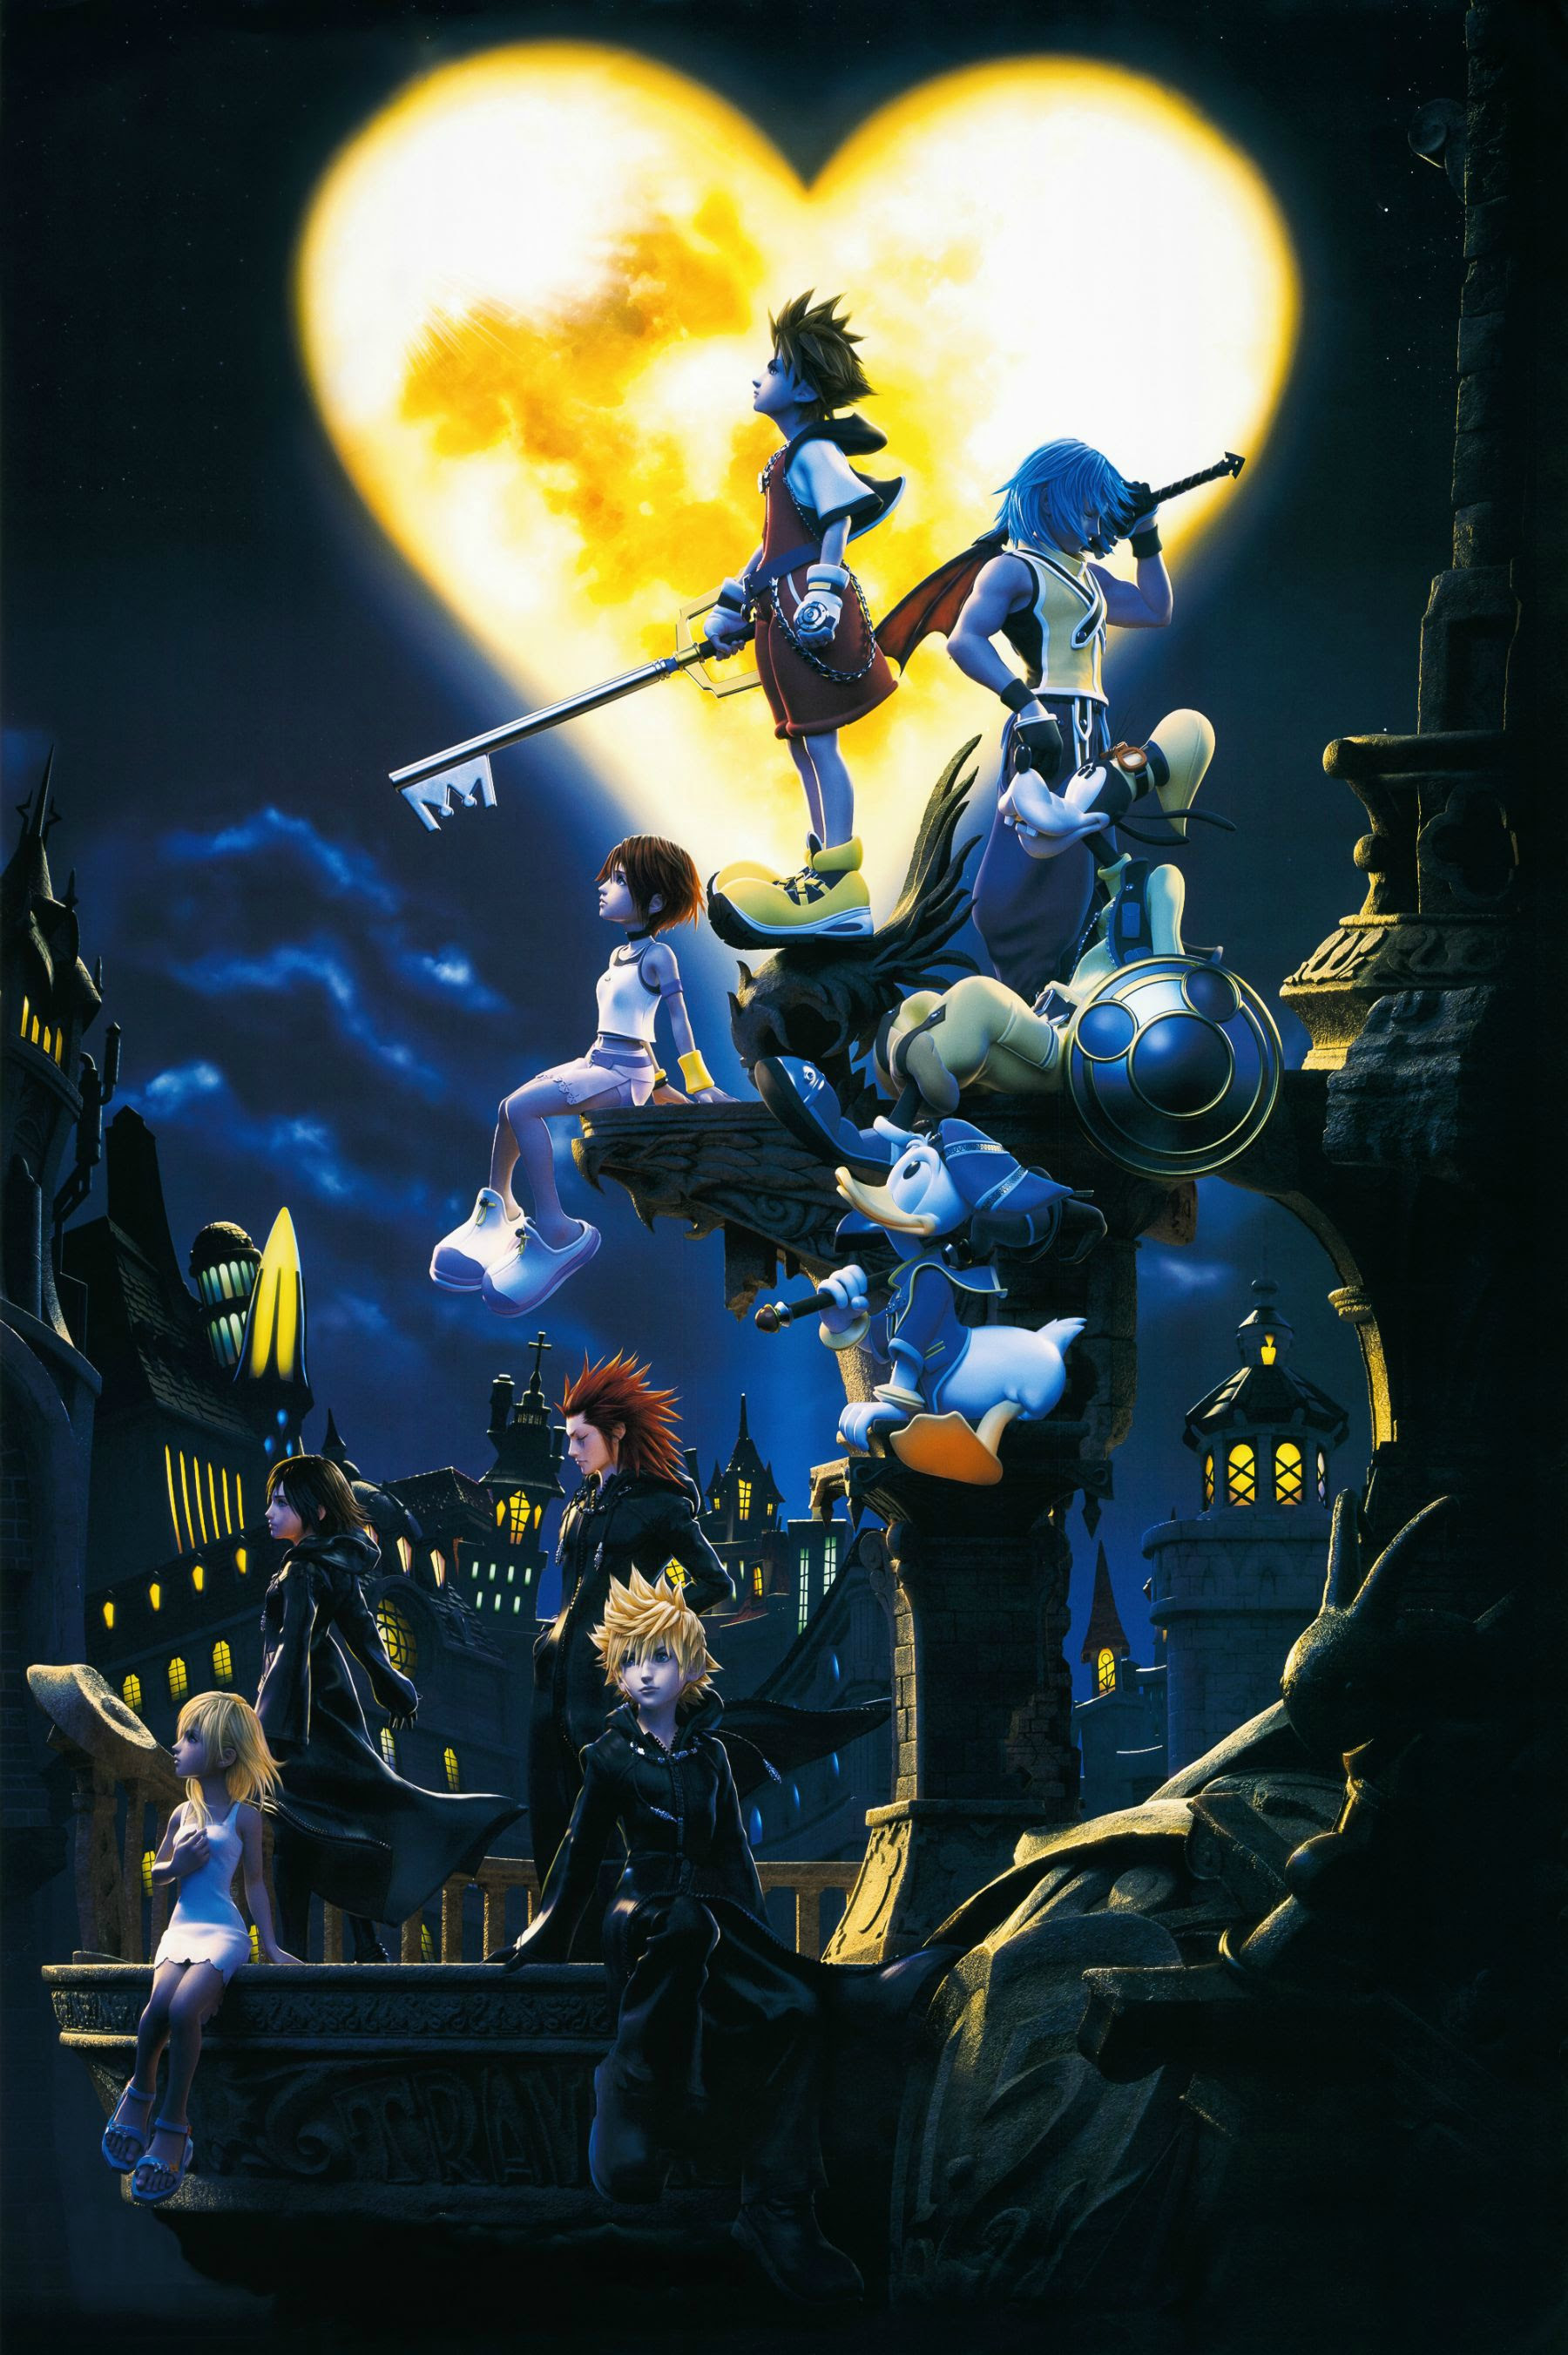 Ive removed all of the logos and writings from this Kingdom Hearts poster. Enjoy! : KingdomHearts